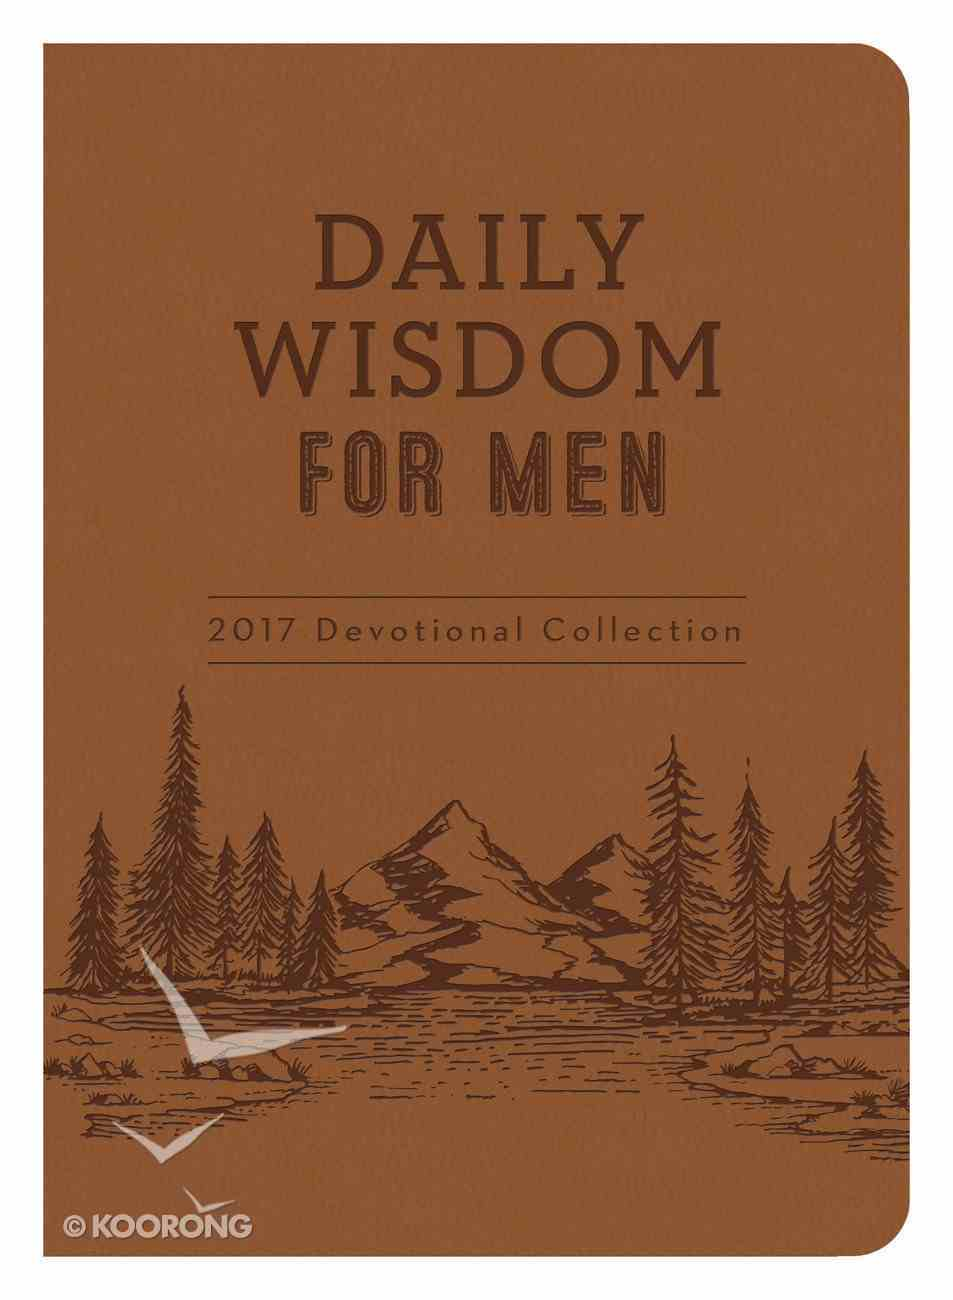 Daily Wisdom For Men 2017 Devotional Collection eBook